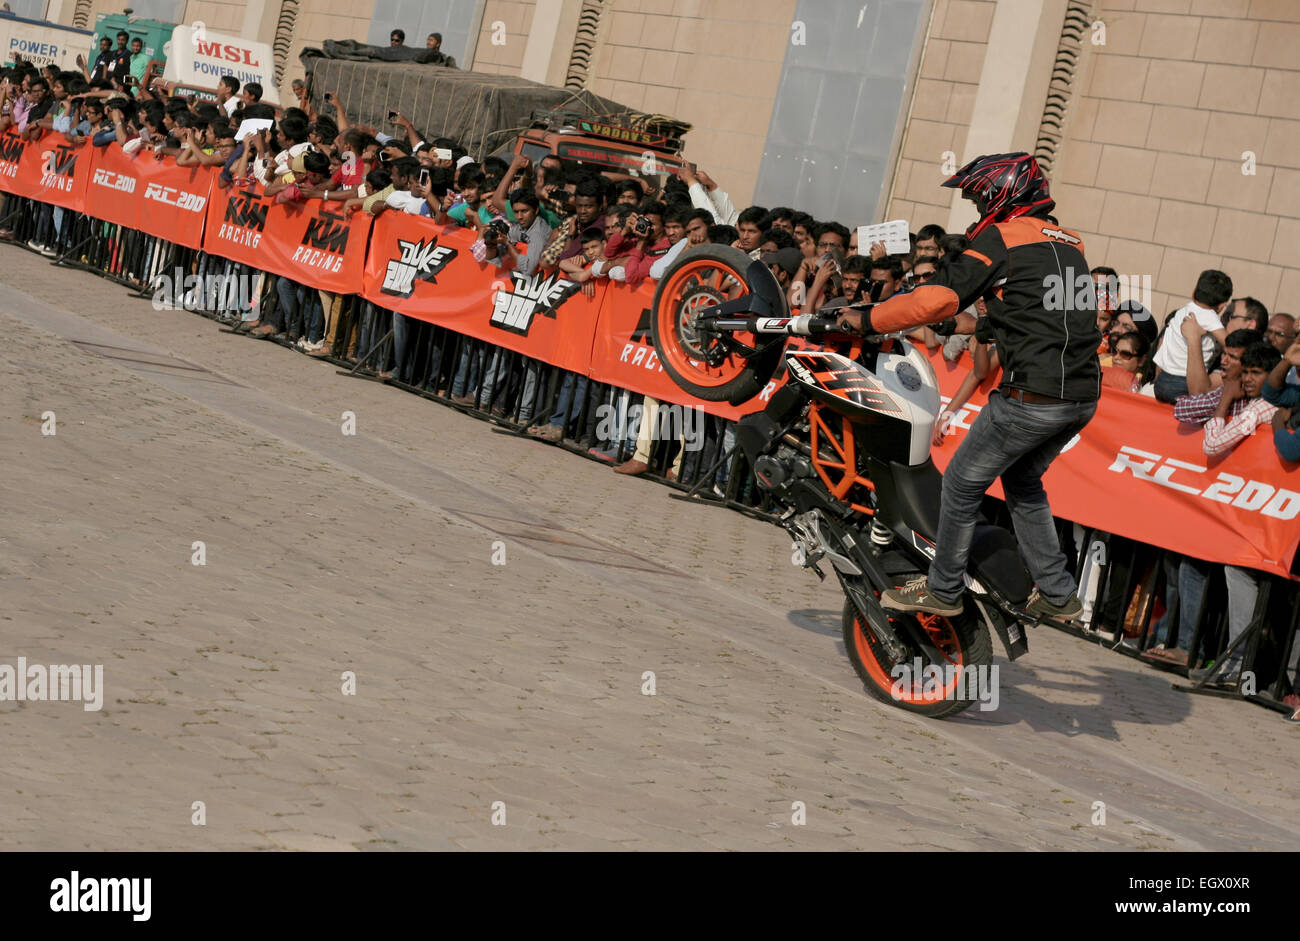 Motor cyclists KTM bikers perform stunts during the Hyderabad international auto expo on january 1,2000 in Hyderabad,India. Stock Photo